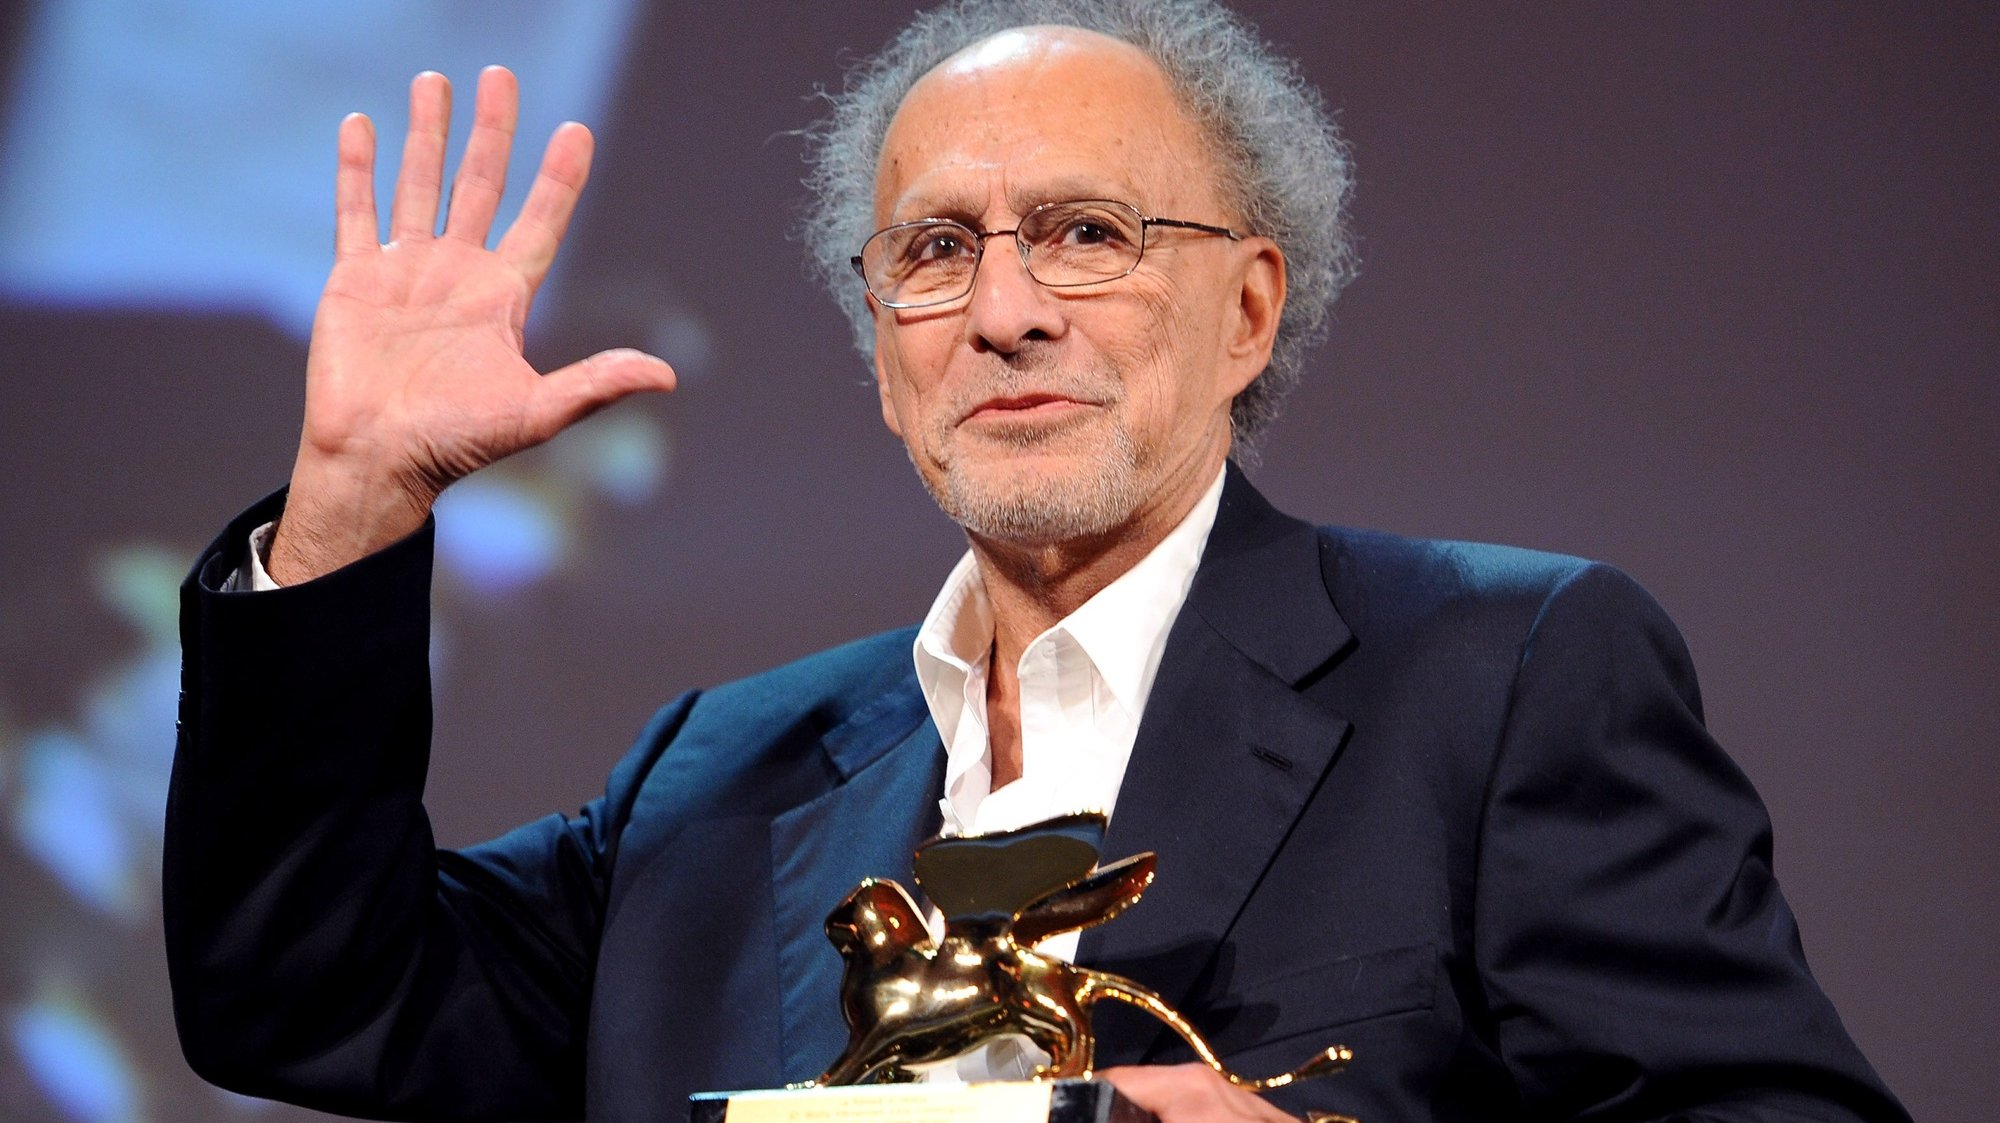 epa02329436 US director Monte Hellman poses with the Special Golden Lion award for his movie 'Road to nowhere' during the closing award ceremony of the 67th annual Venice Film Festival in Venice, Italy, 11 September 2010. The award ceremony is followed by the screening of 'The Tempest' by US director Julie Taymor, presented out of competition.  EPA/CLAUDIO ONORATI